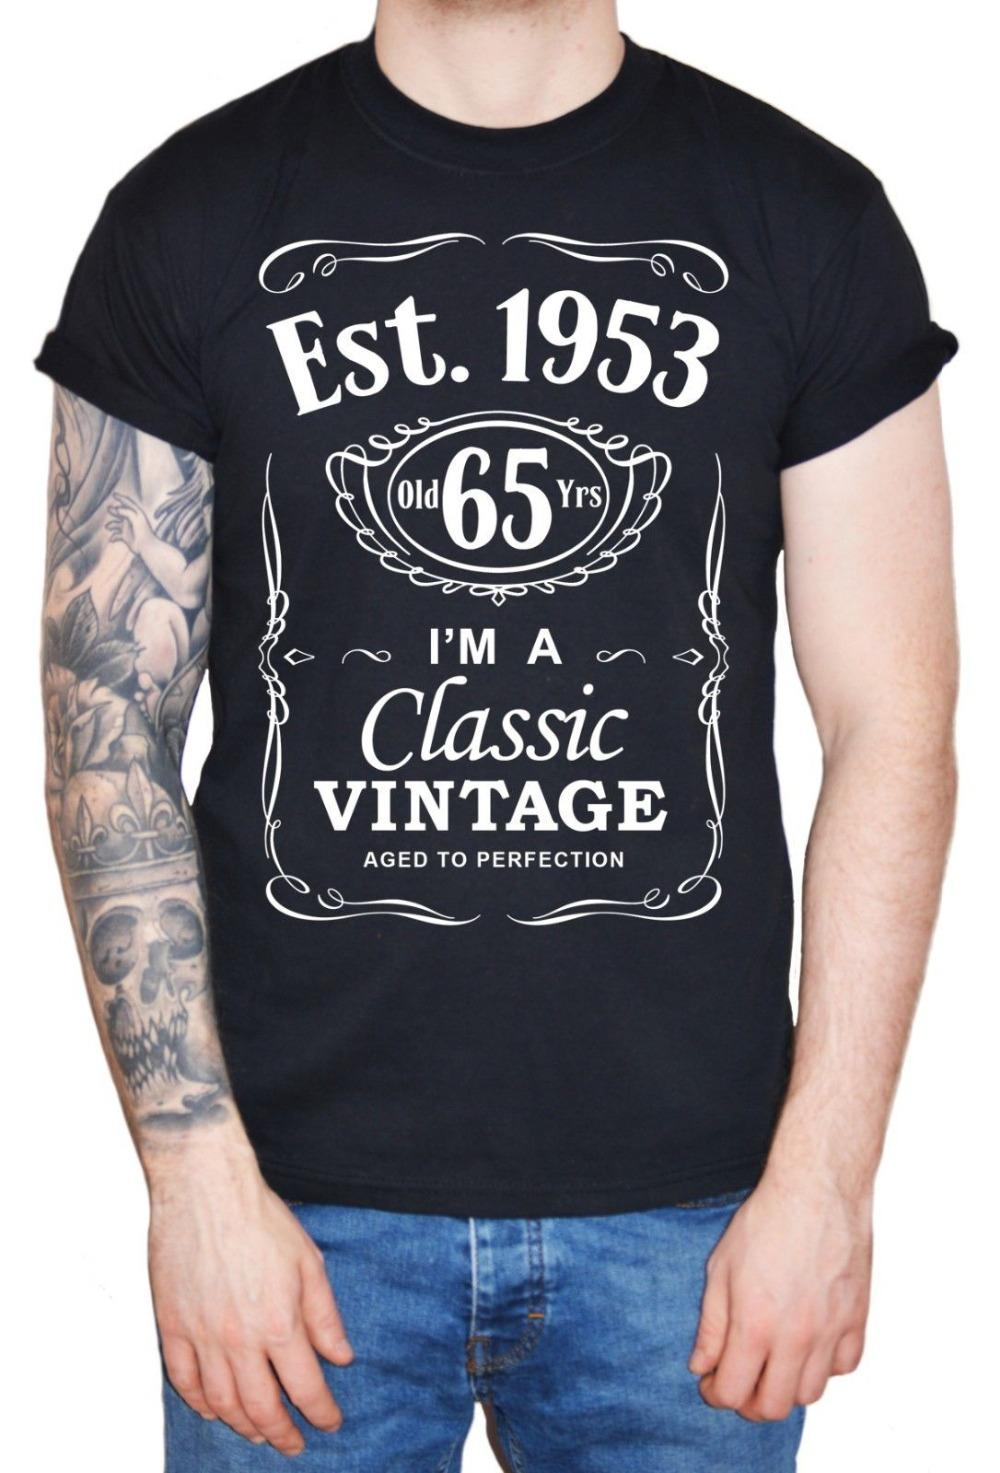 efaf3459b Best Funny T Shirts Comfort soft Men's 65Th Birthday T Shirt Est 1953  Vintage Man Sixty Fifth 65 Years Gift Crew Neck